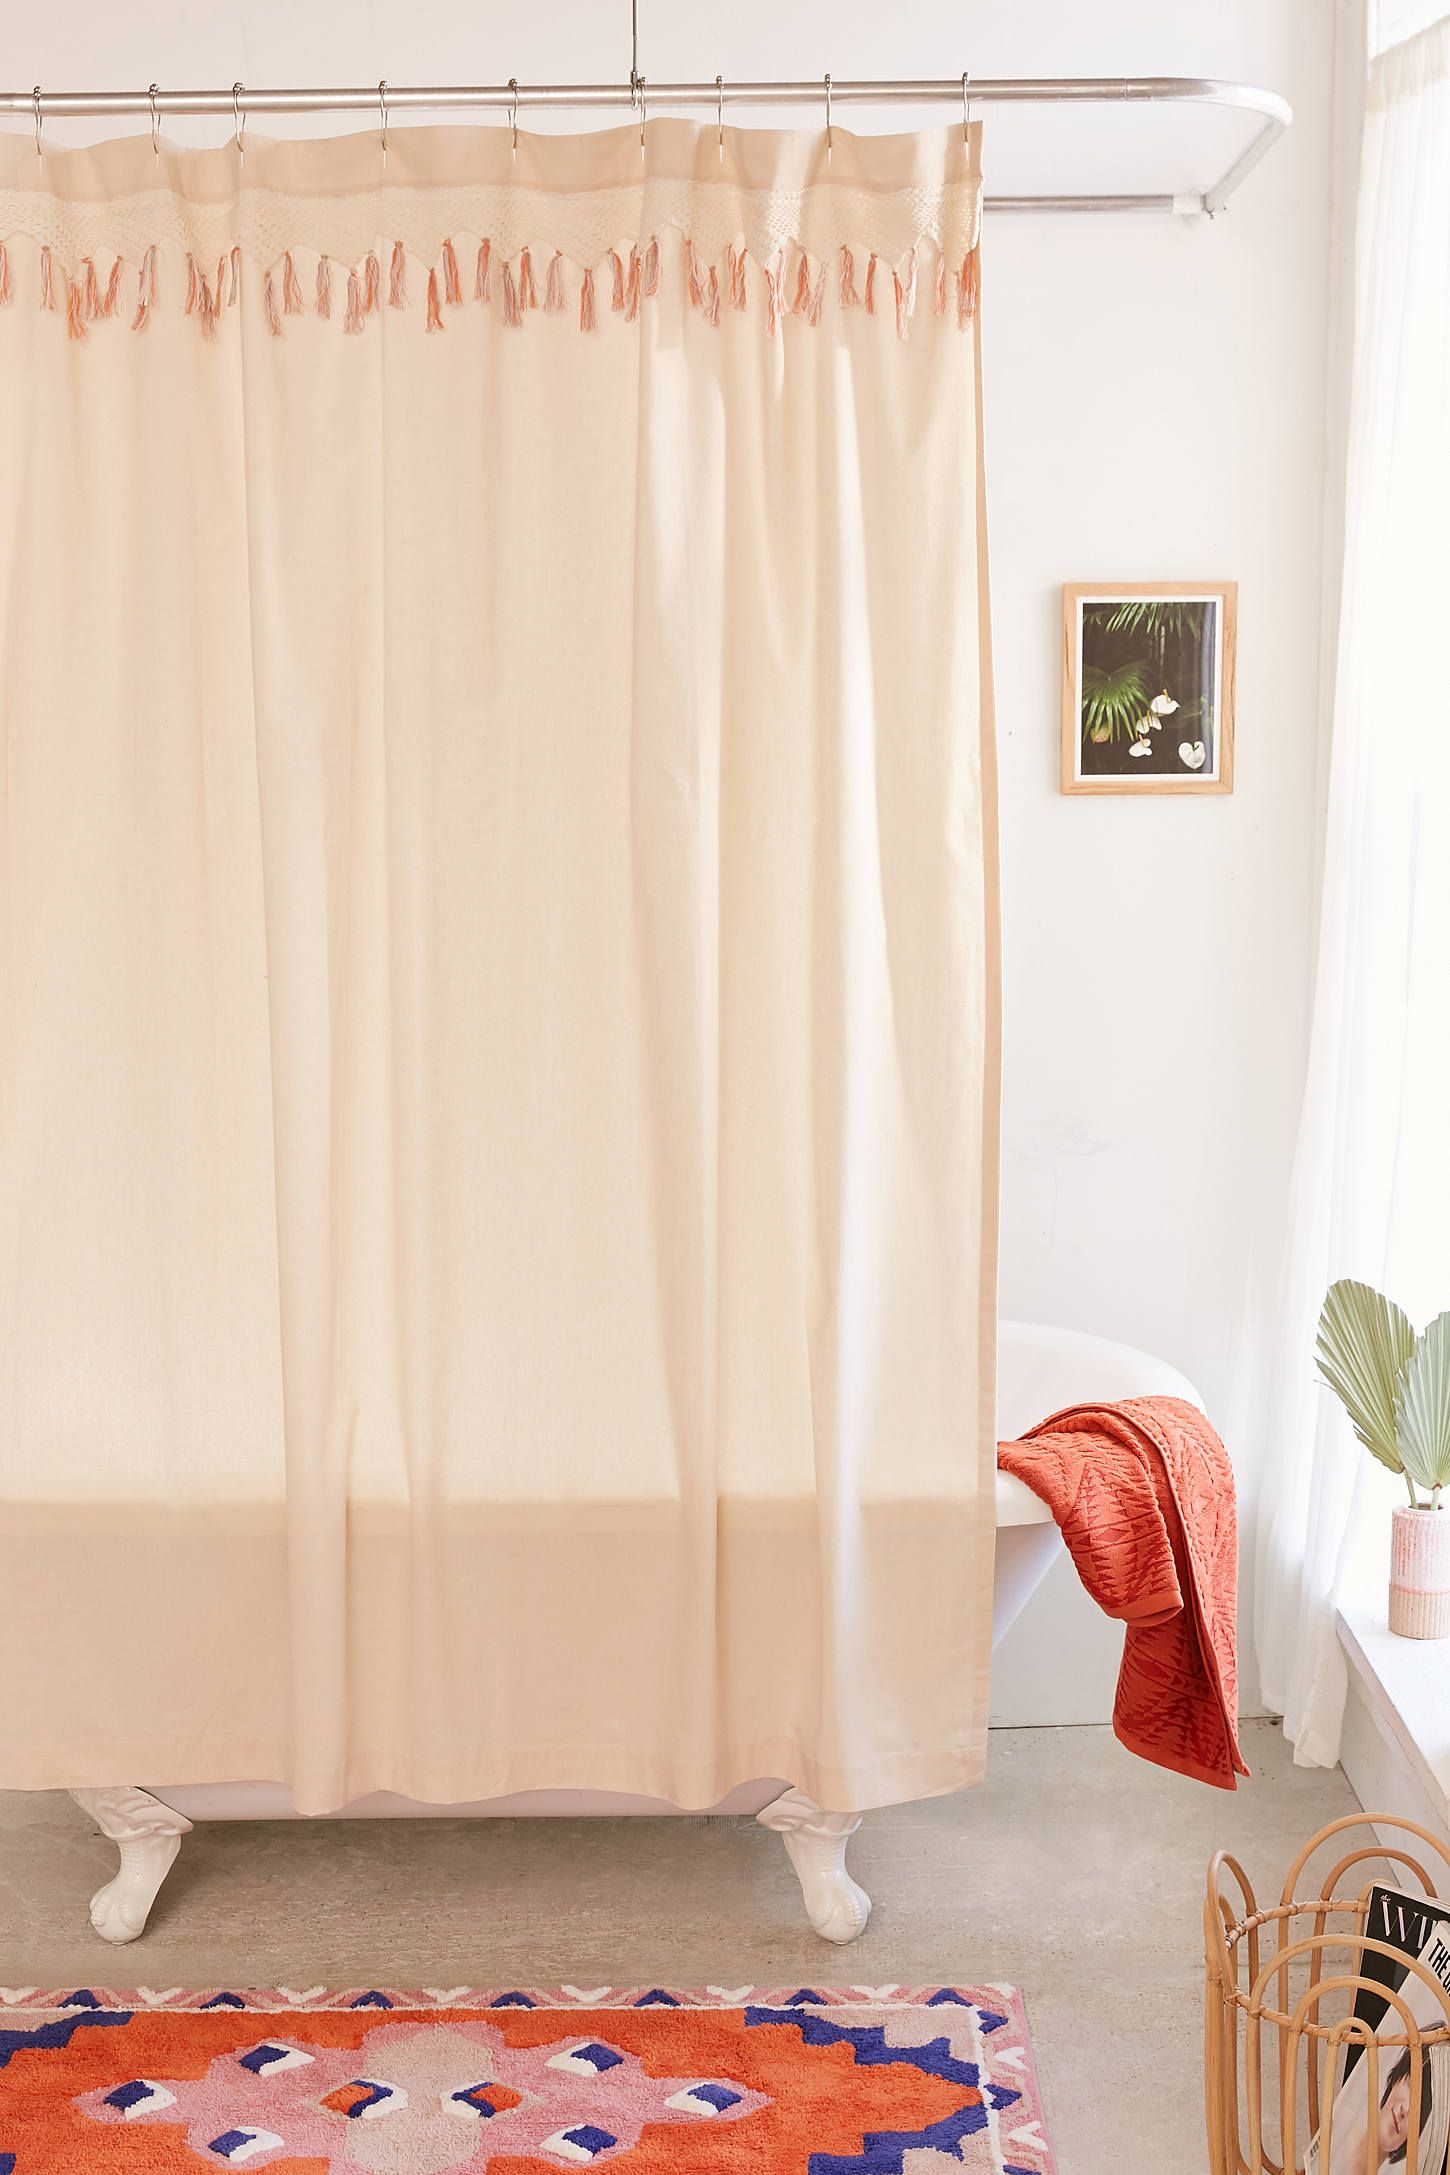 Shower Curtain Liner Shower Curtain Urban Outfitters Bathroom